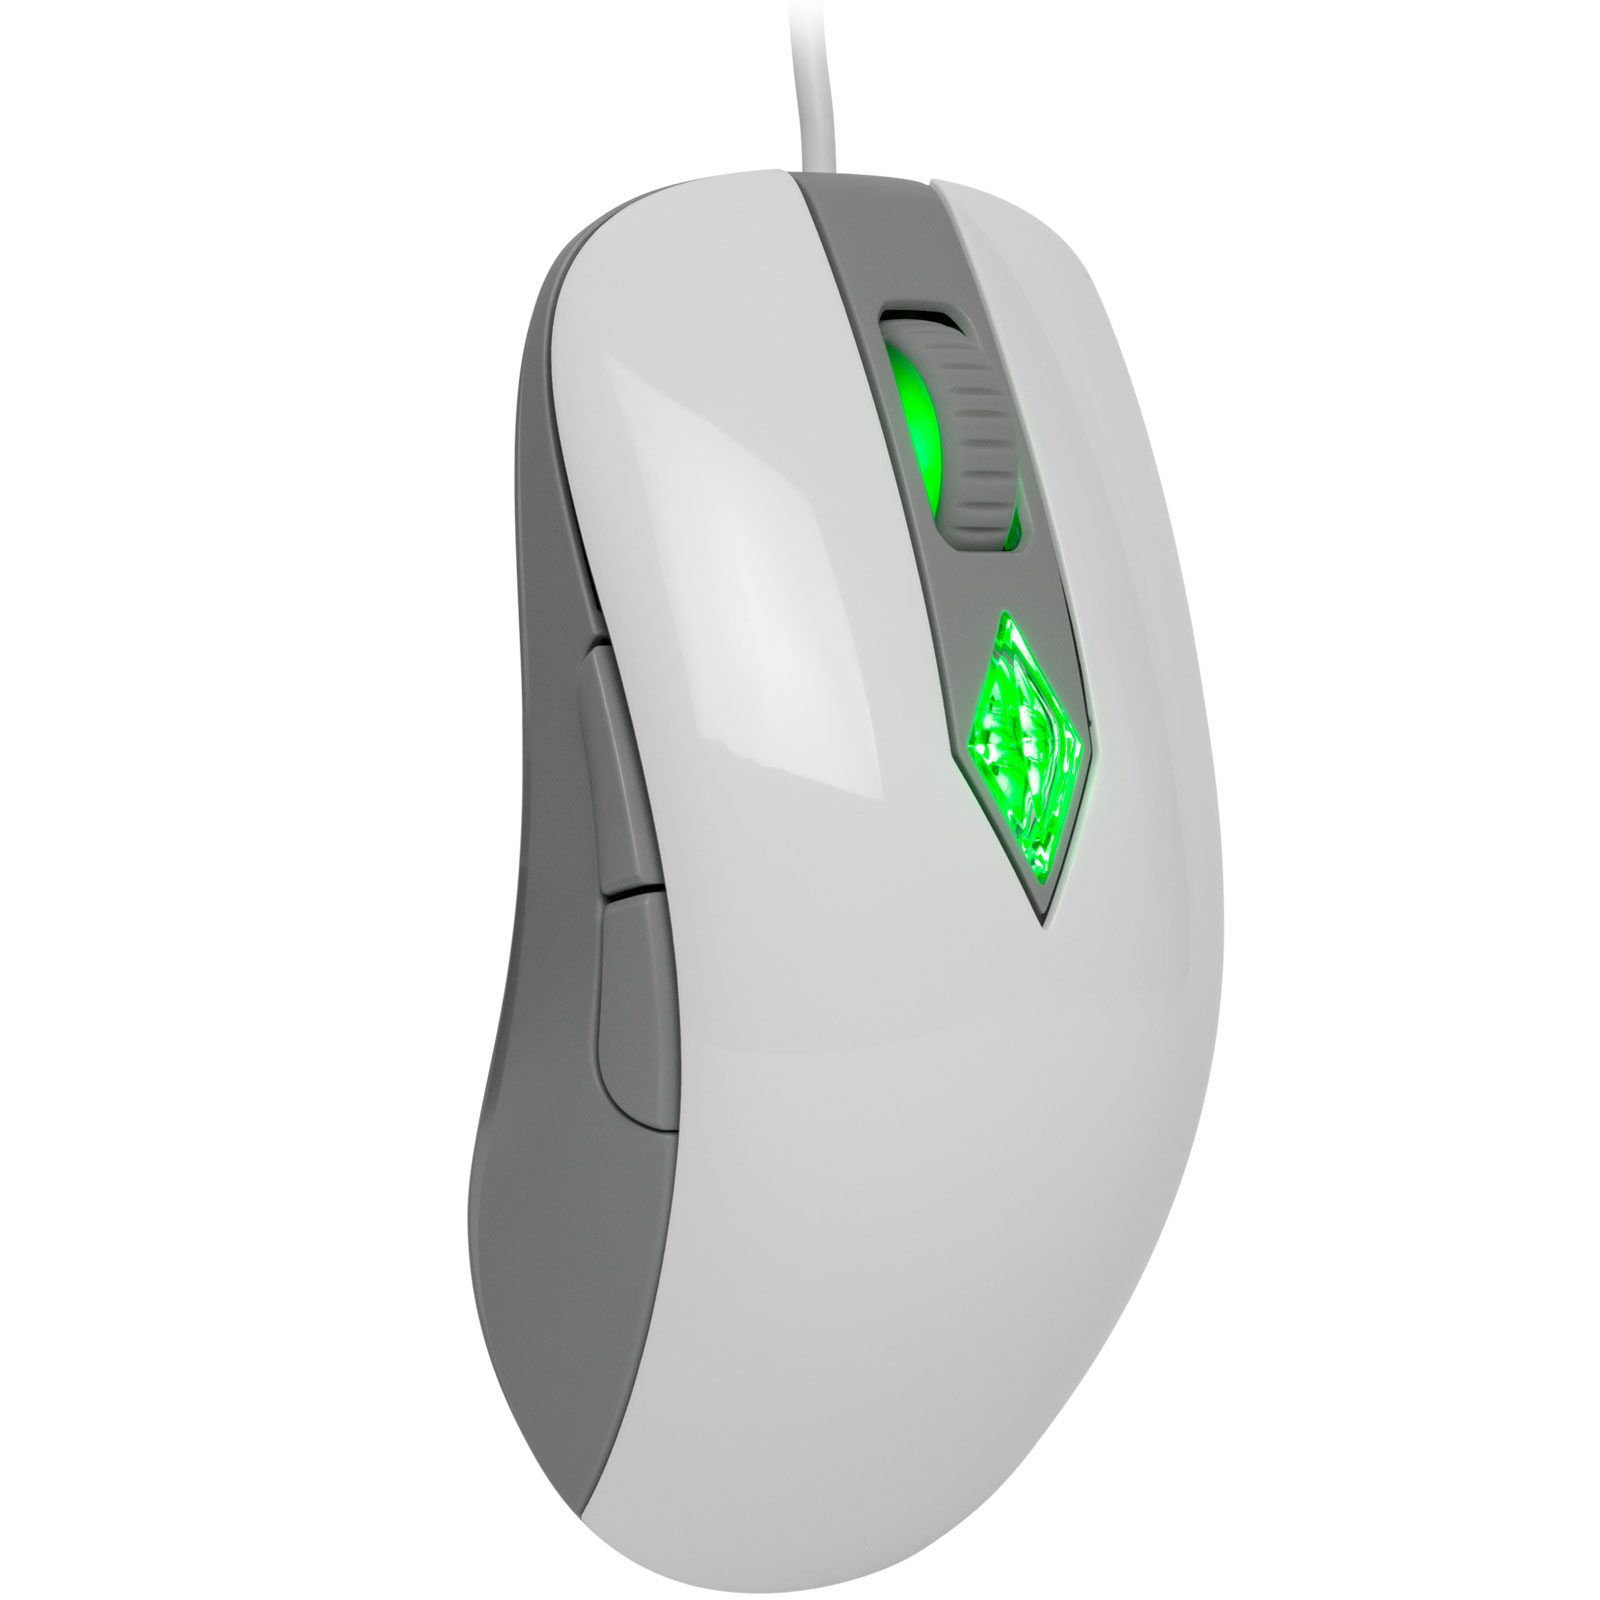 Steelseries The Sims 4 Gaming Mouse Souris Pc